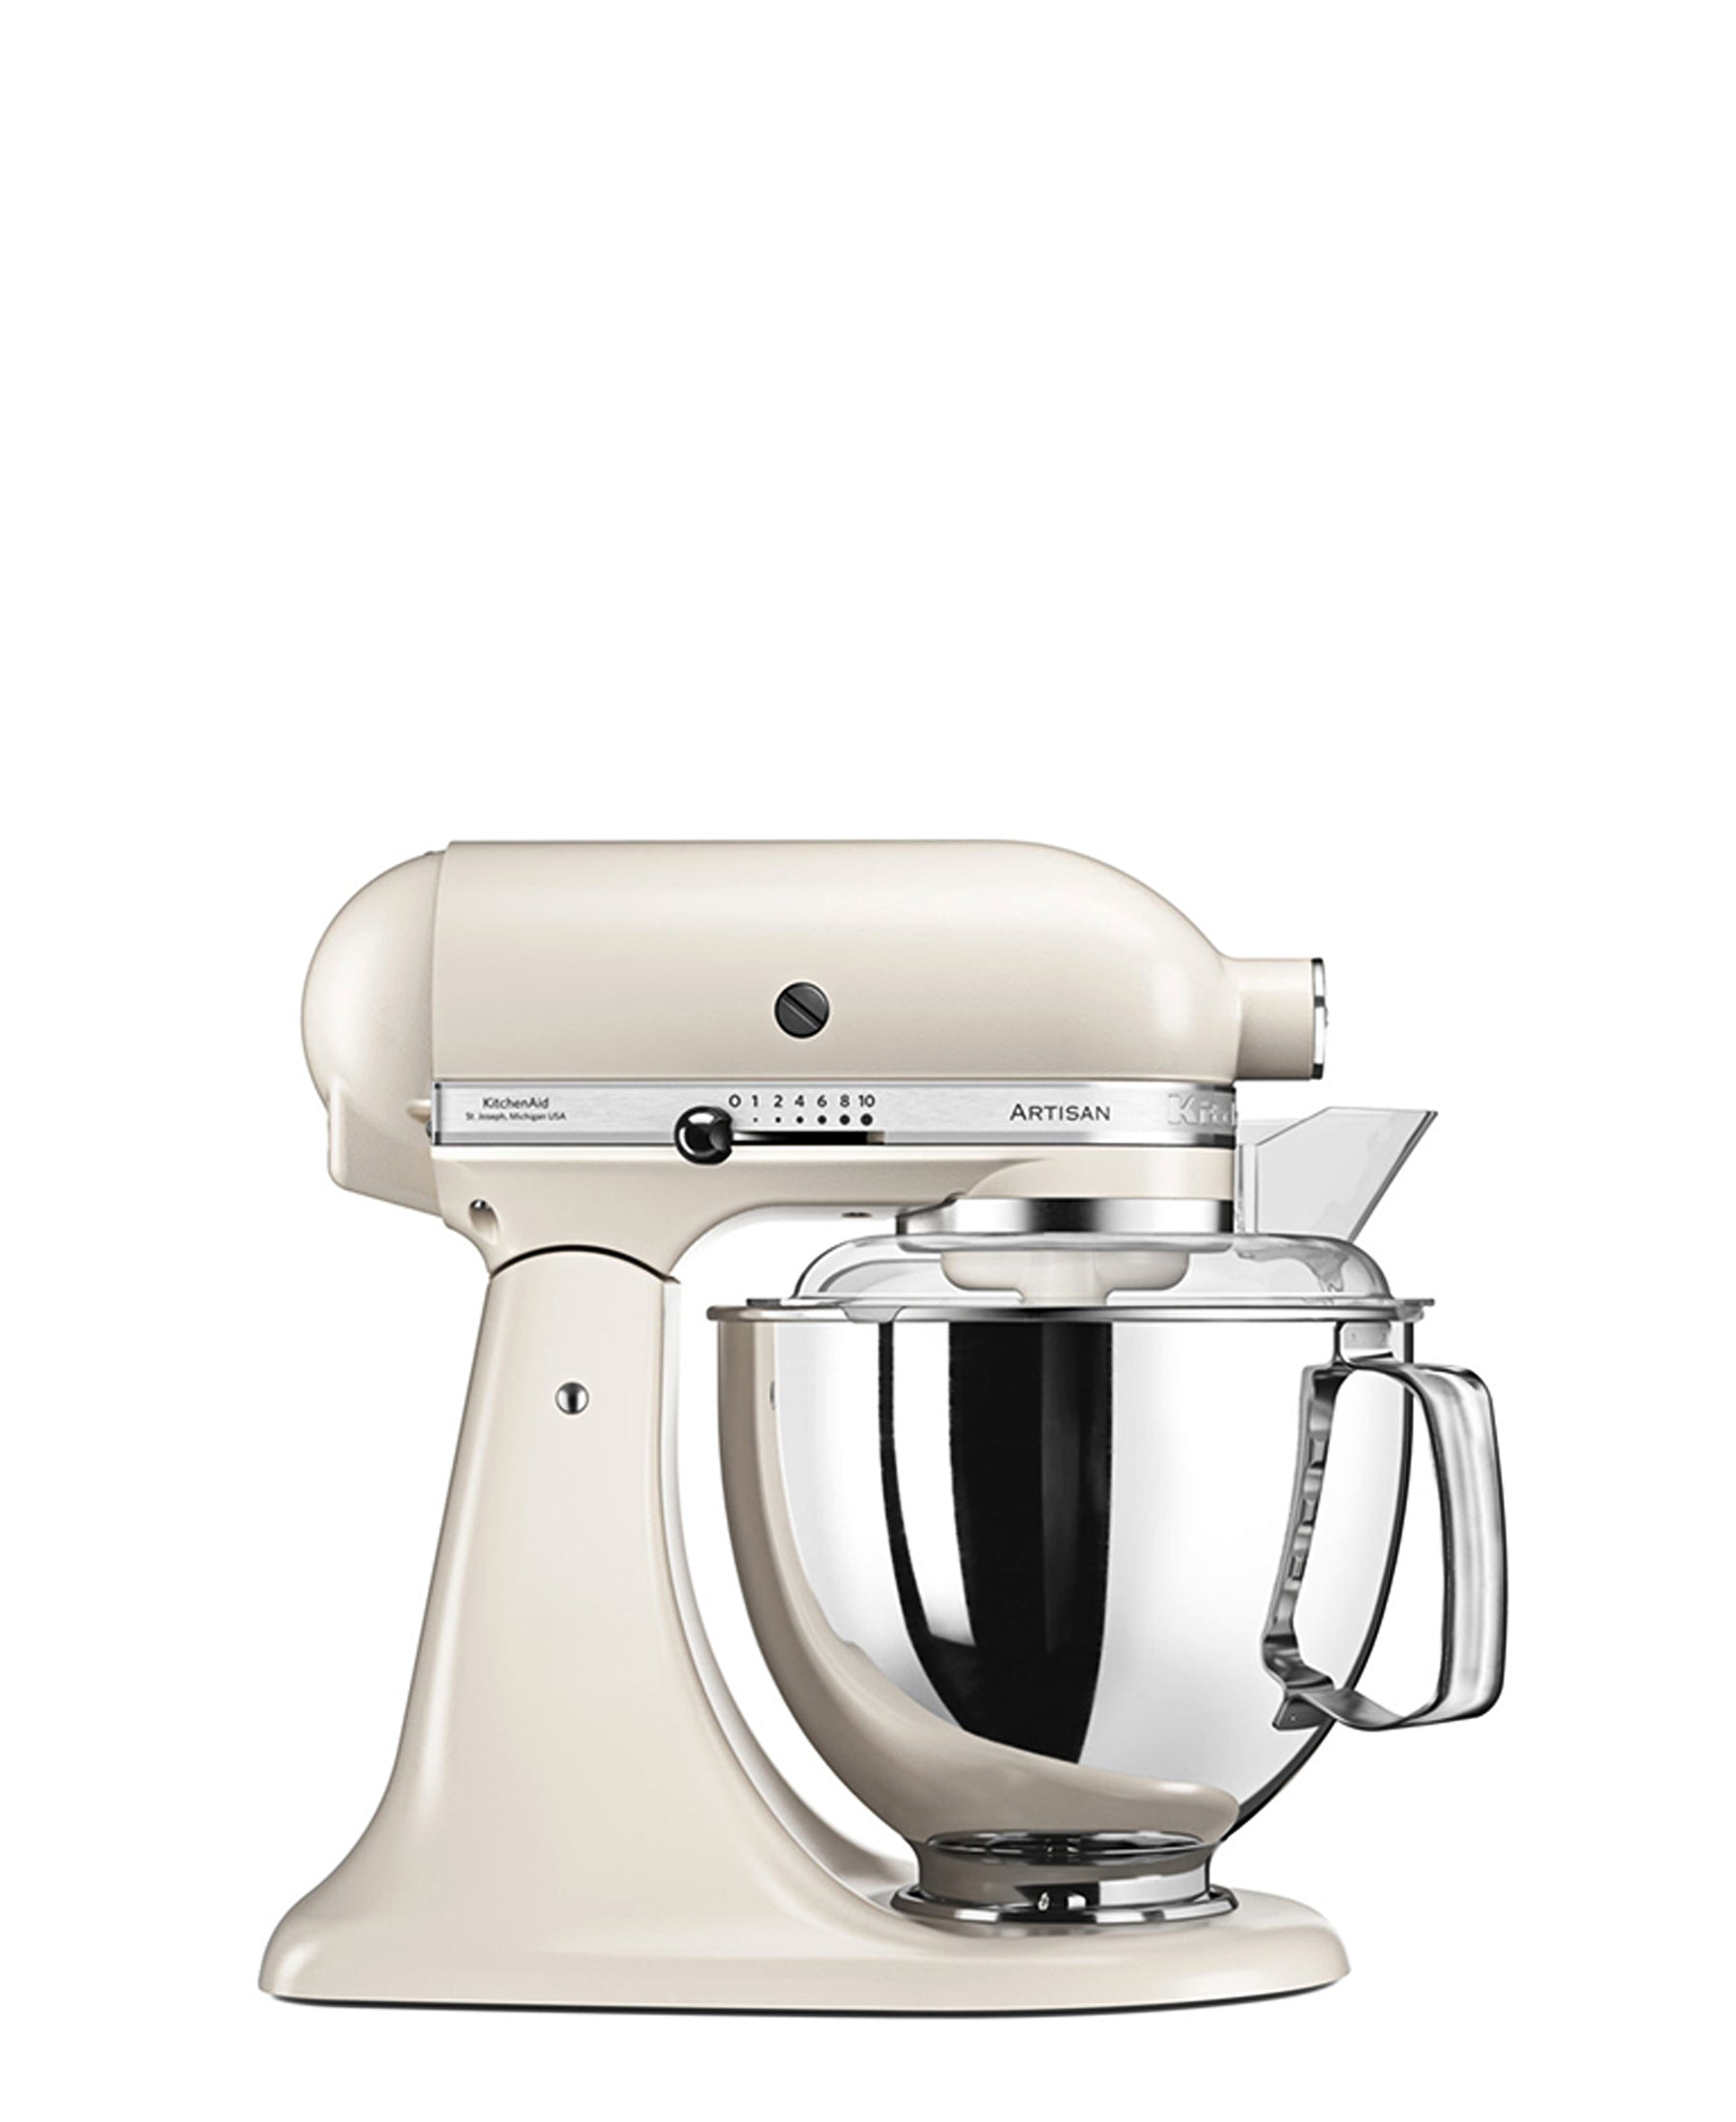 KitchenAid 4.8LT Stand Mixer + Free S/S Bowl - Cafe Latte